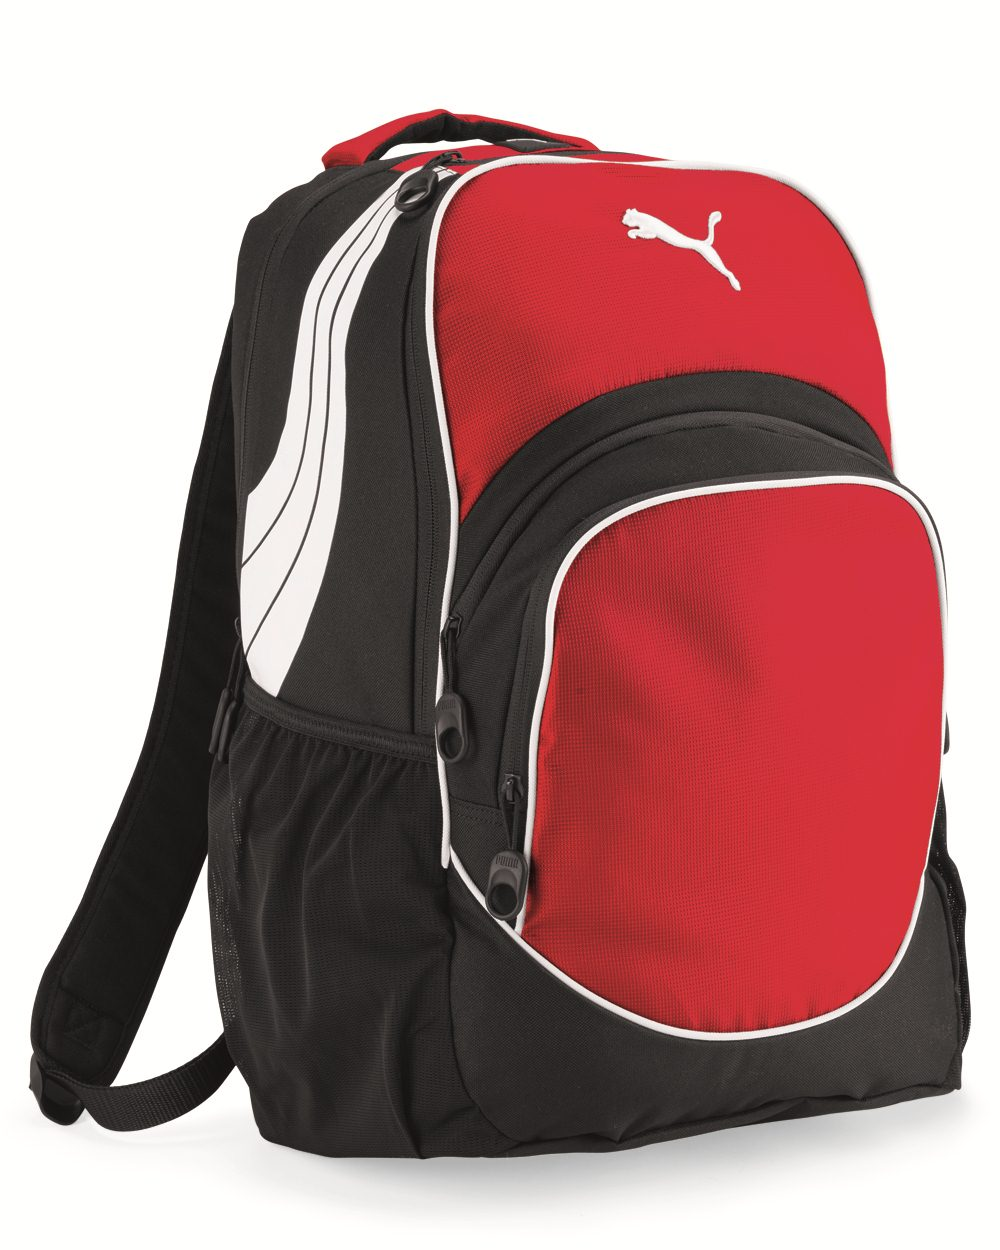 PUMA PMAT1004 - Teamsport Formation Ball Backpack